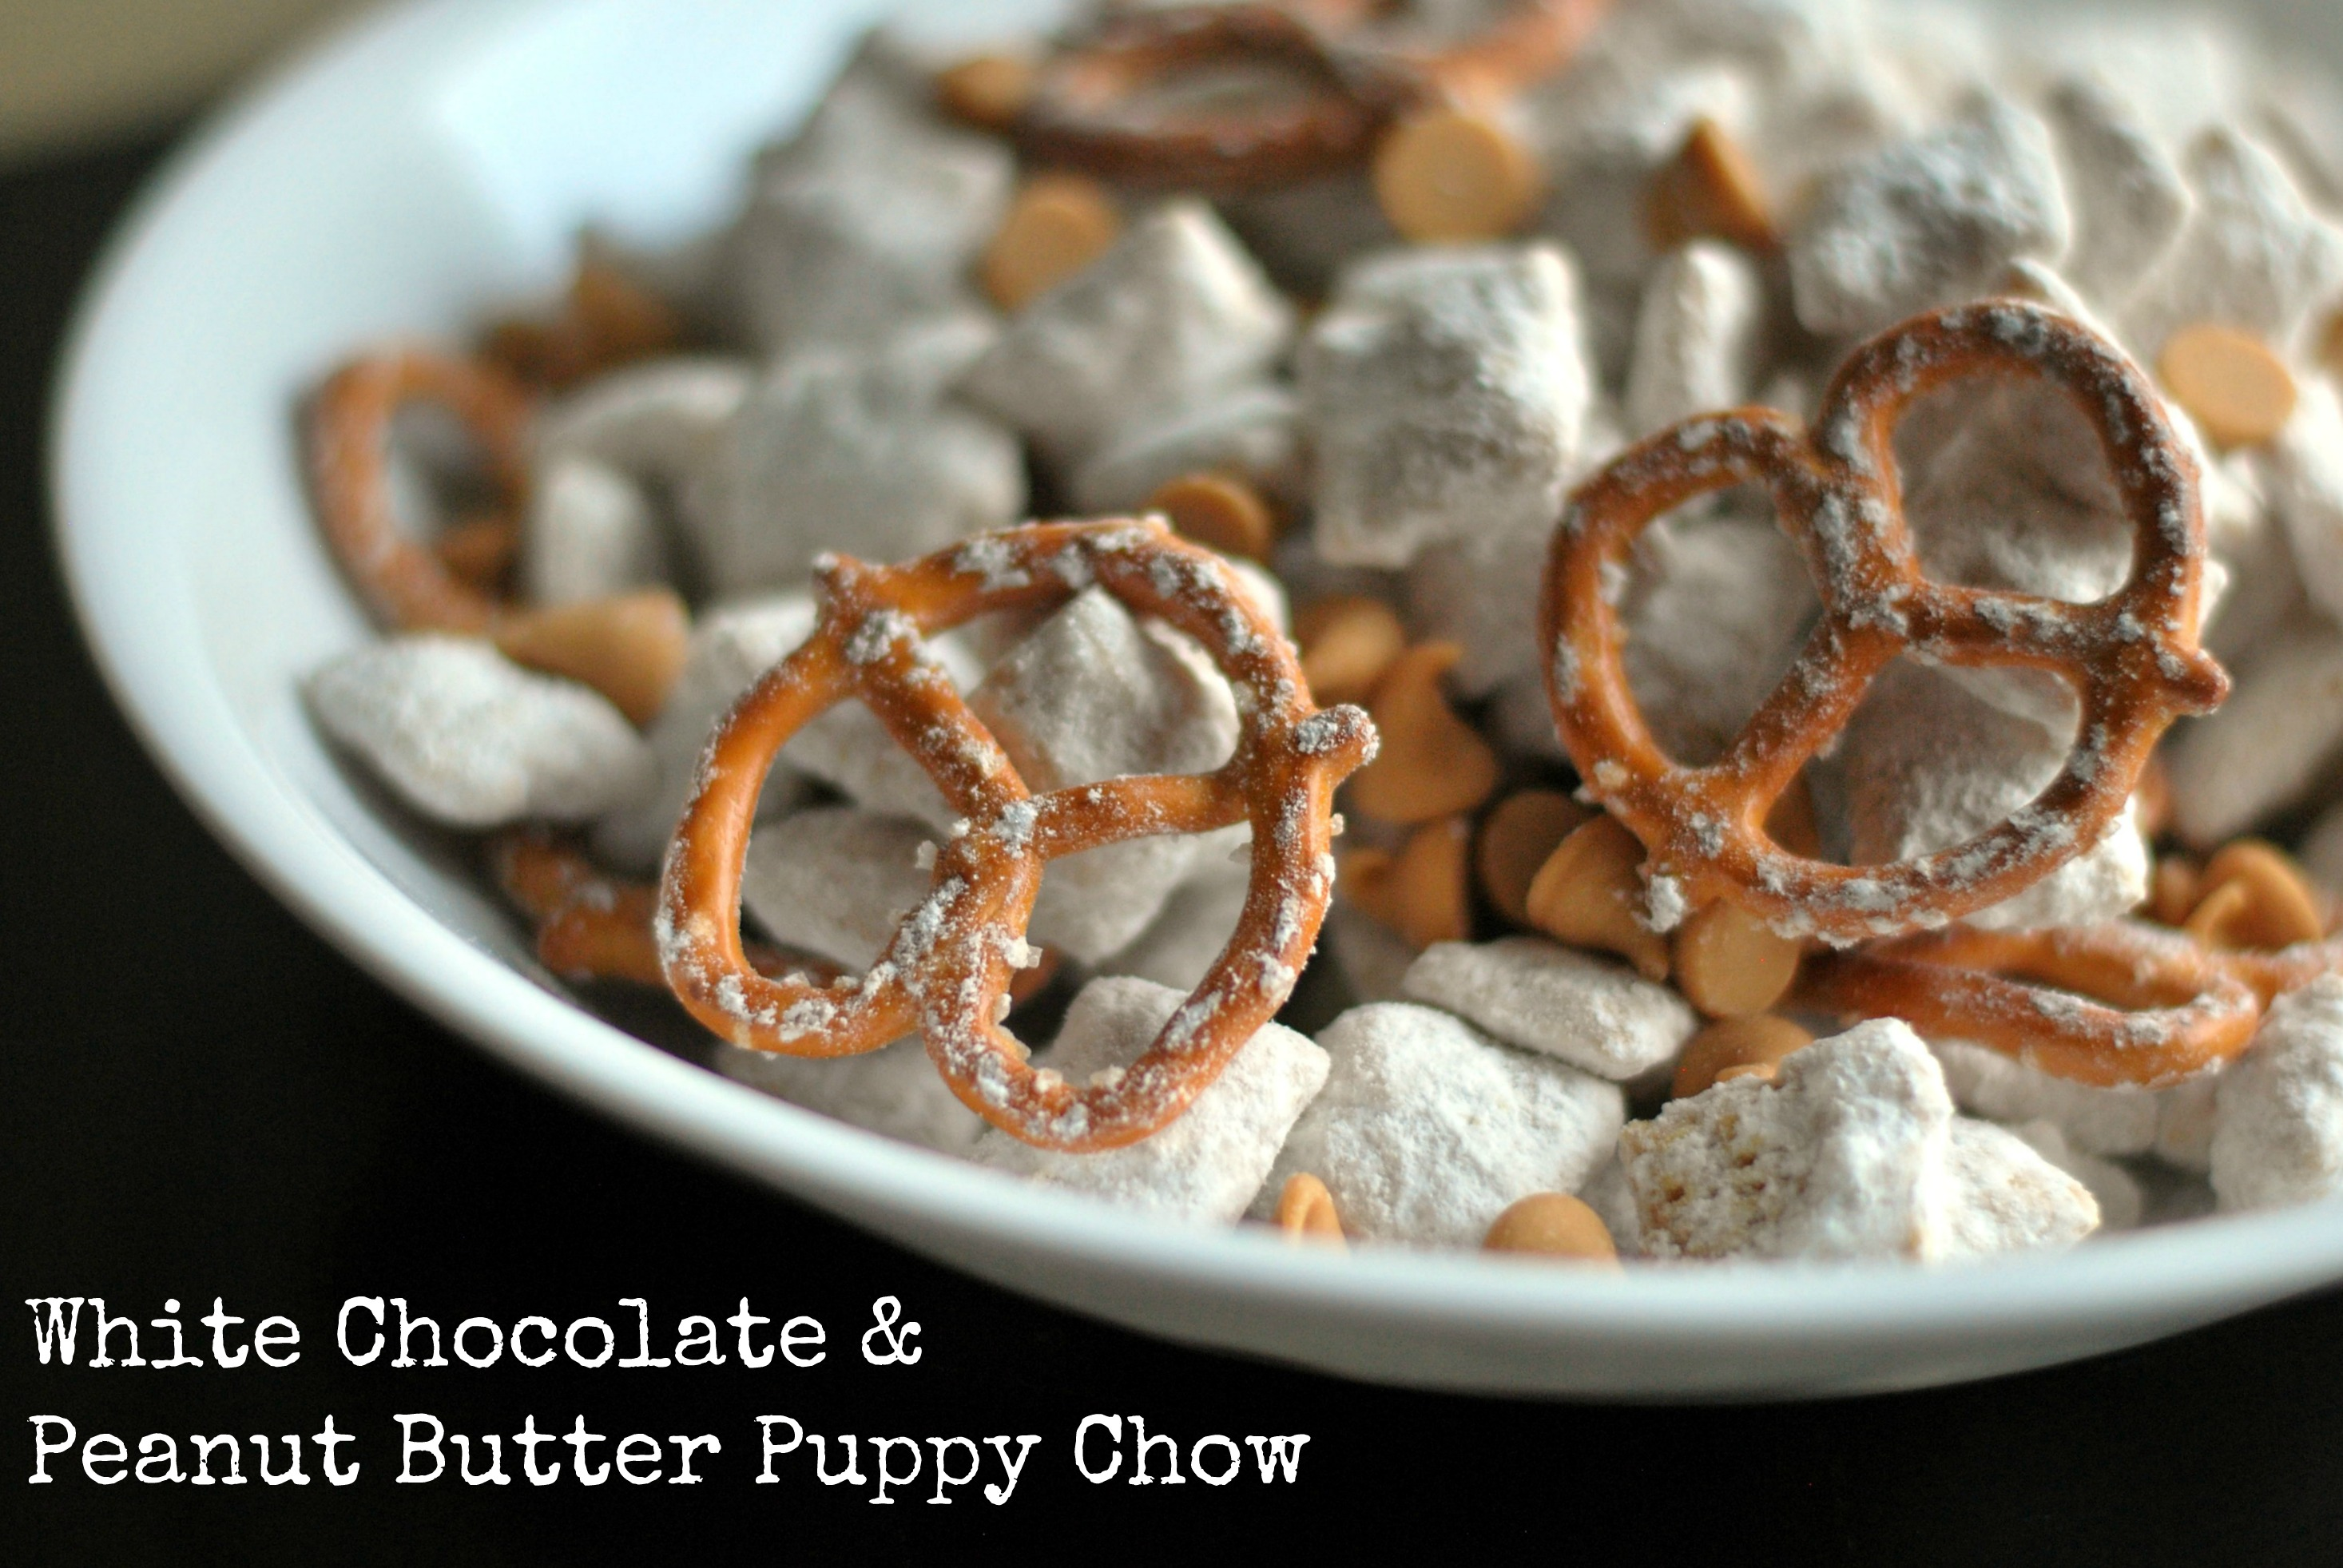 White Chocolate & Peanut Butter Puppy Chow